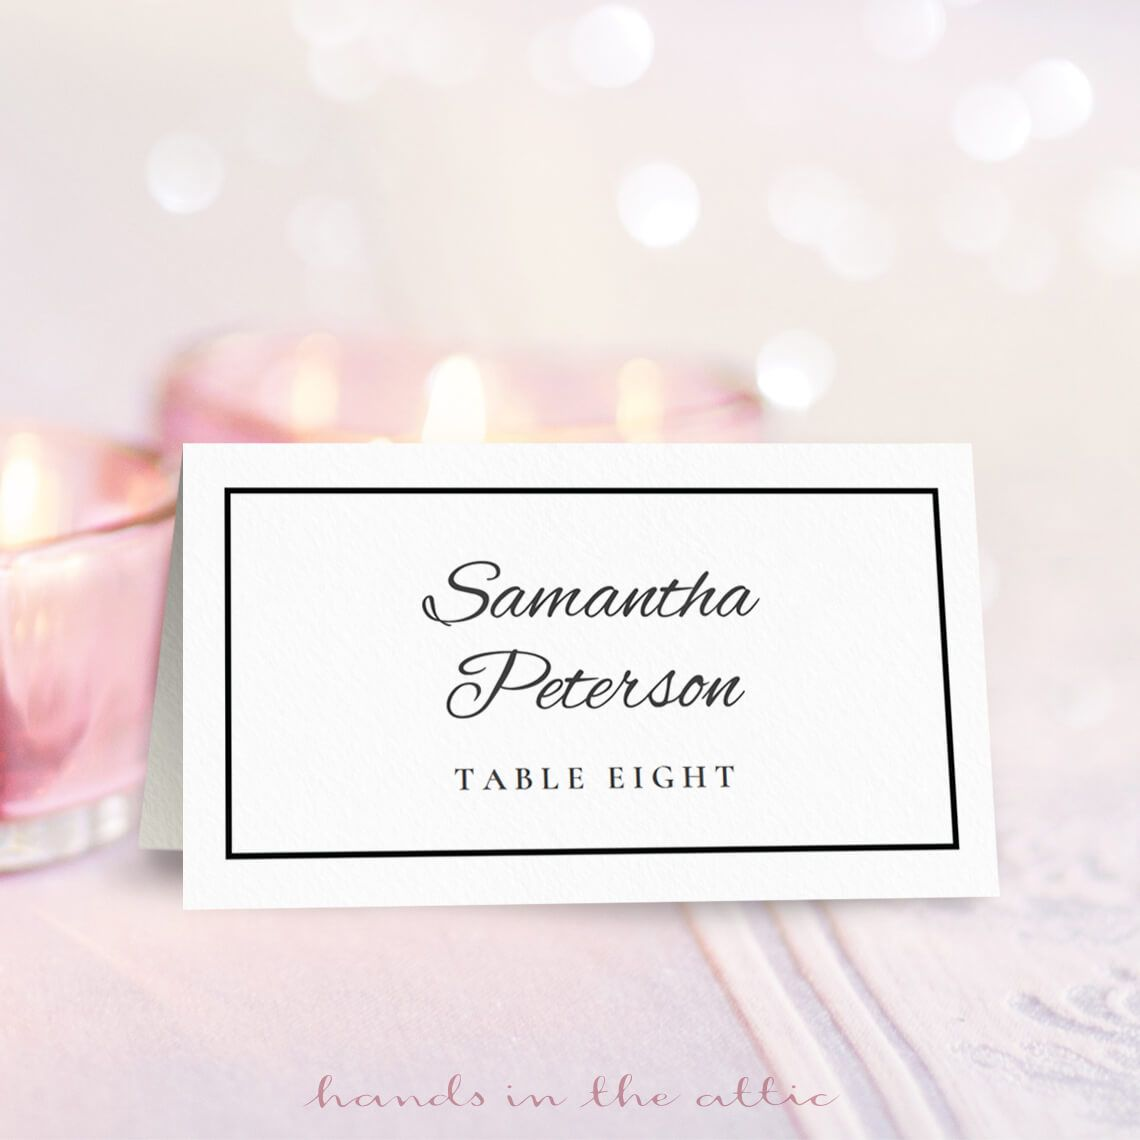 Wedding Place Card Template Free Download Hands In The Attic Free Place Card Template Card Templates Printable Printable Place Cards